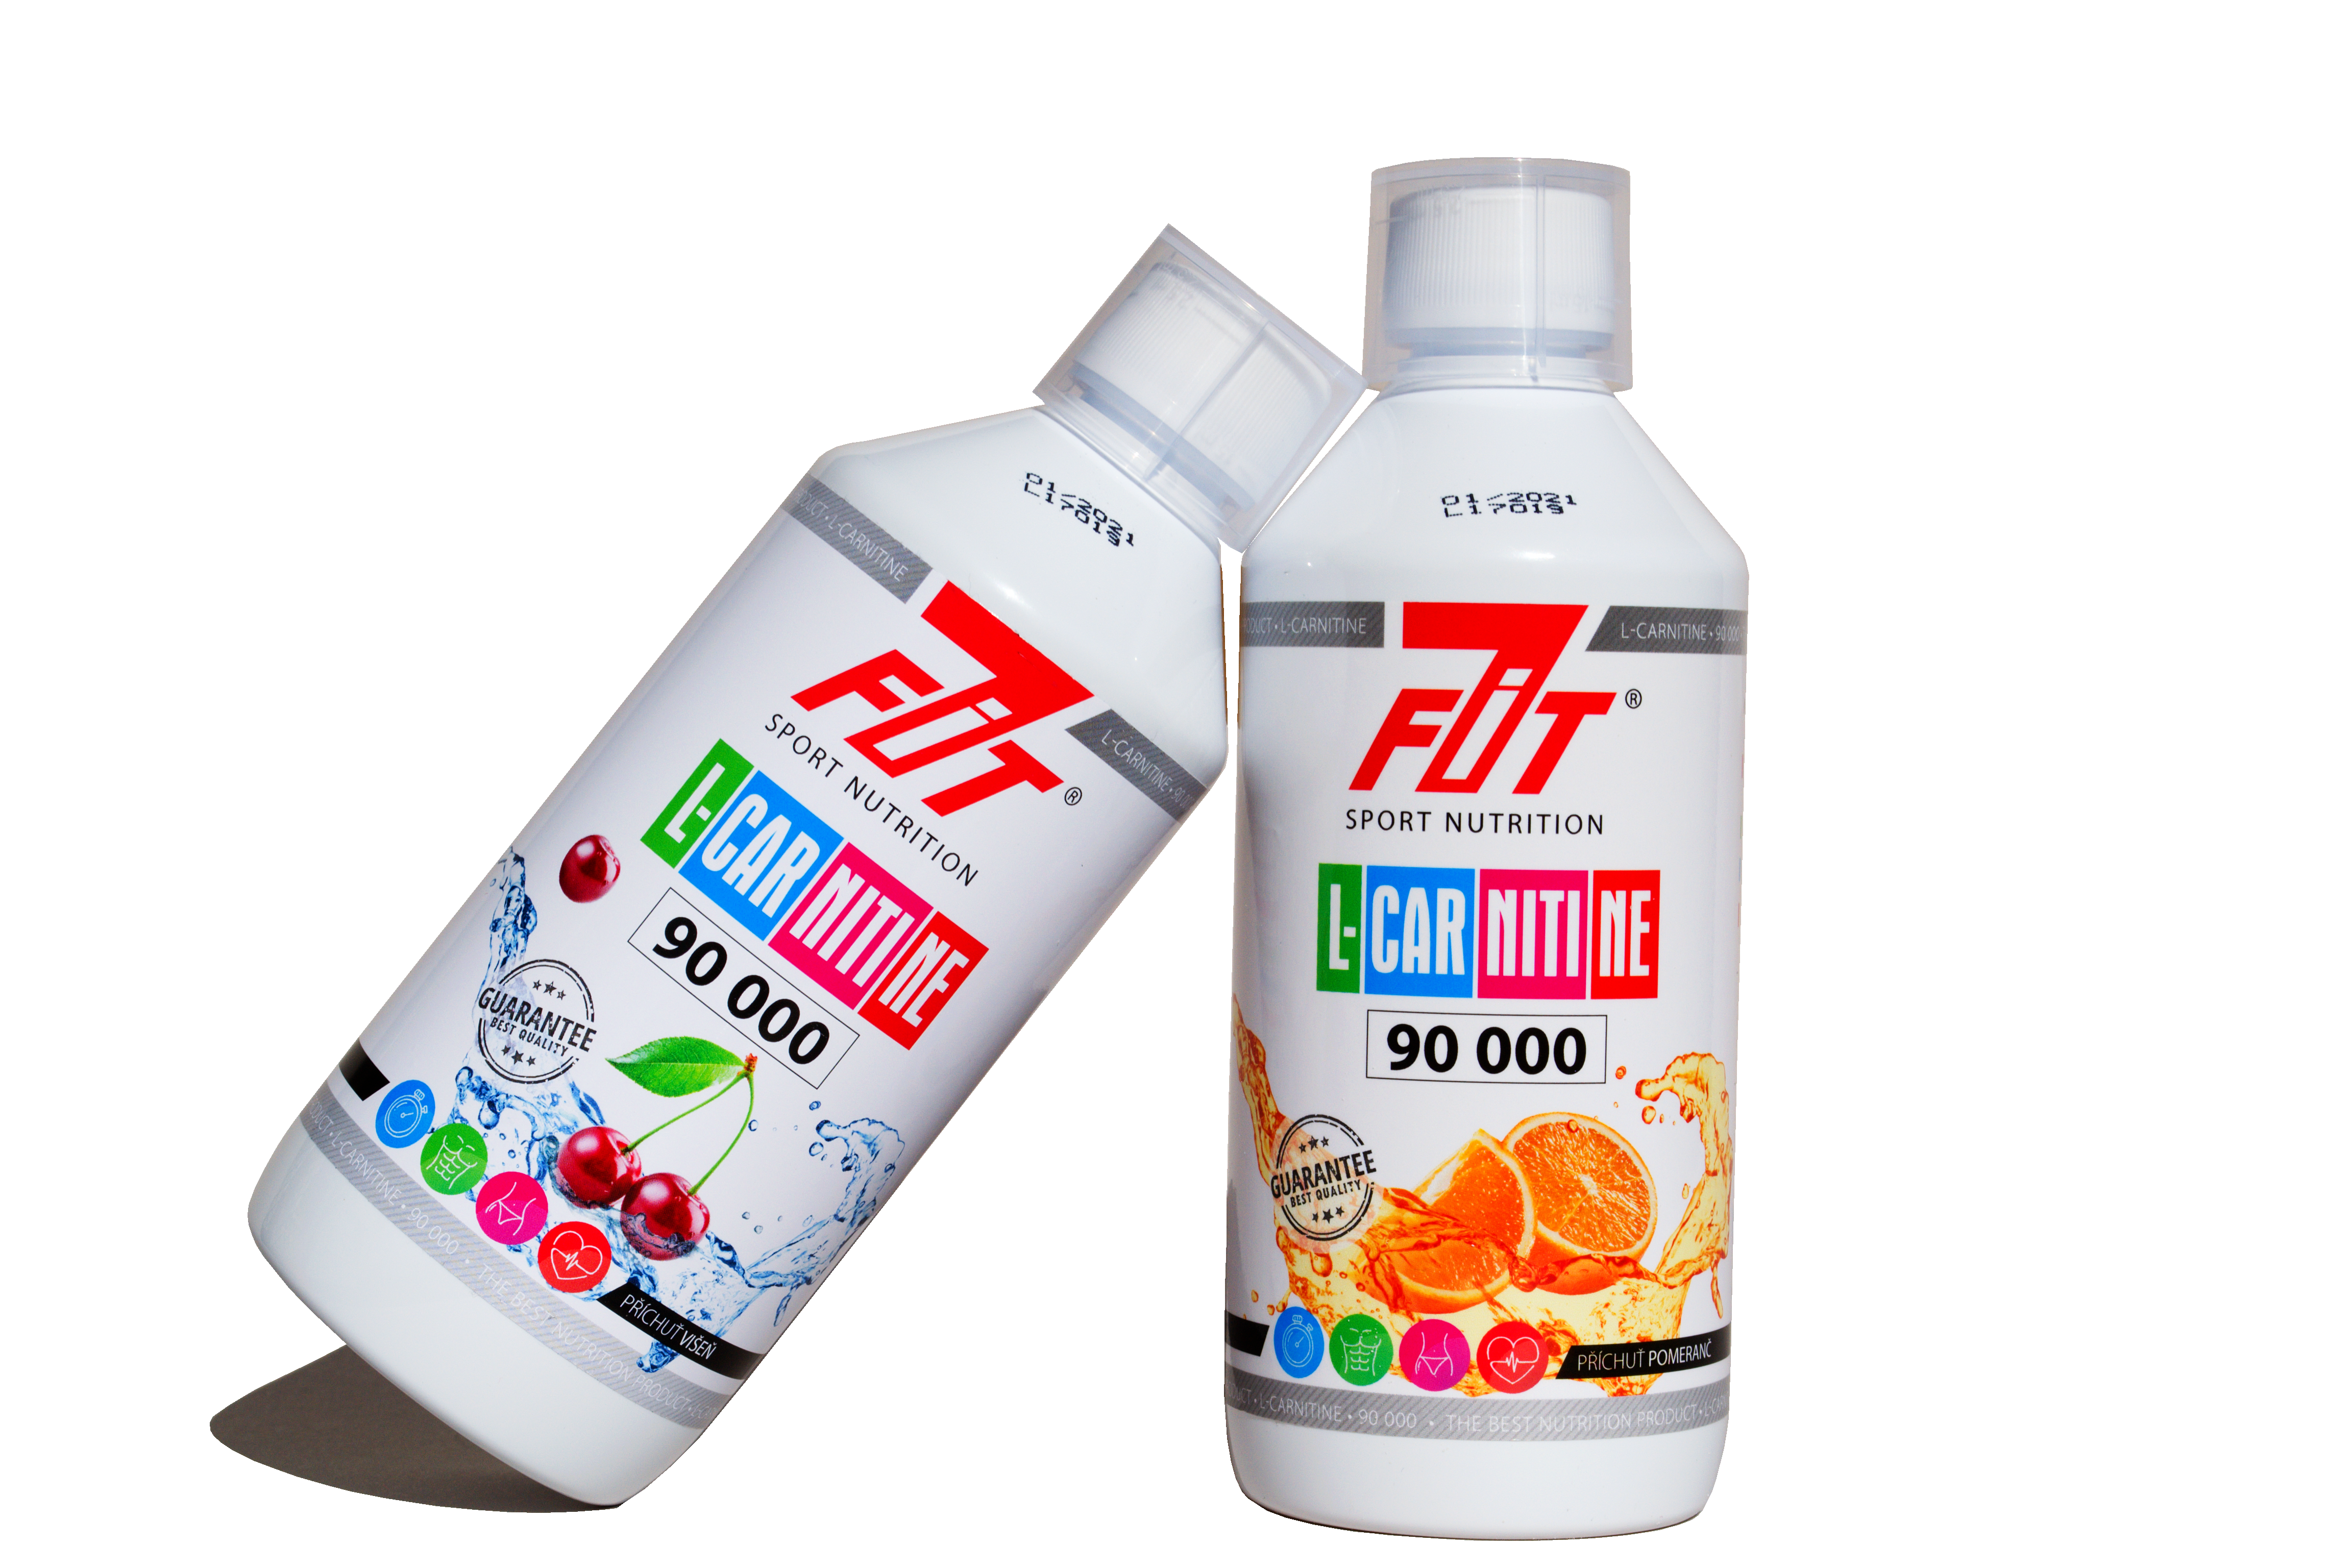 7 Fit Carnitine 90 000 500ml | 7Fit Sport Nutrition